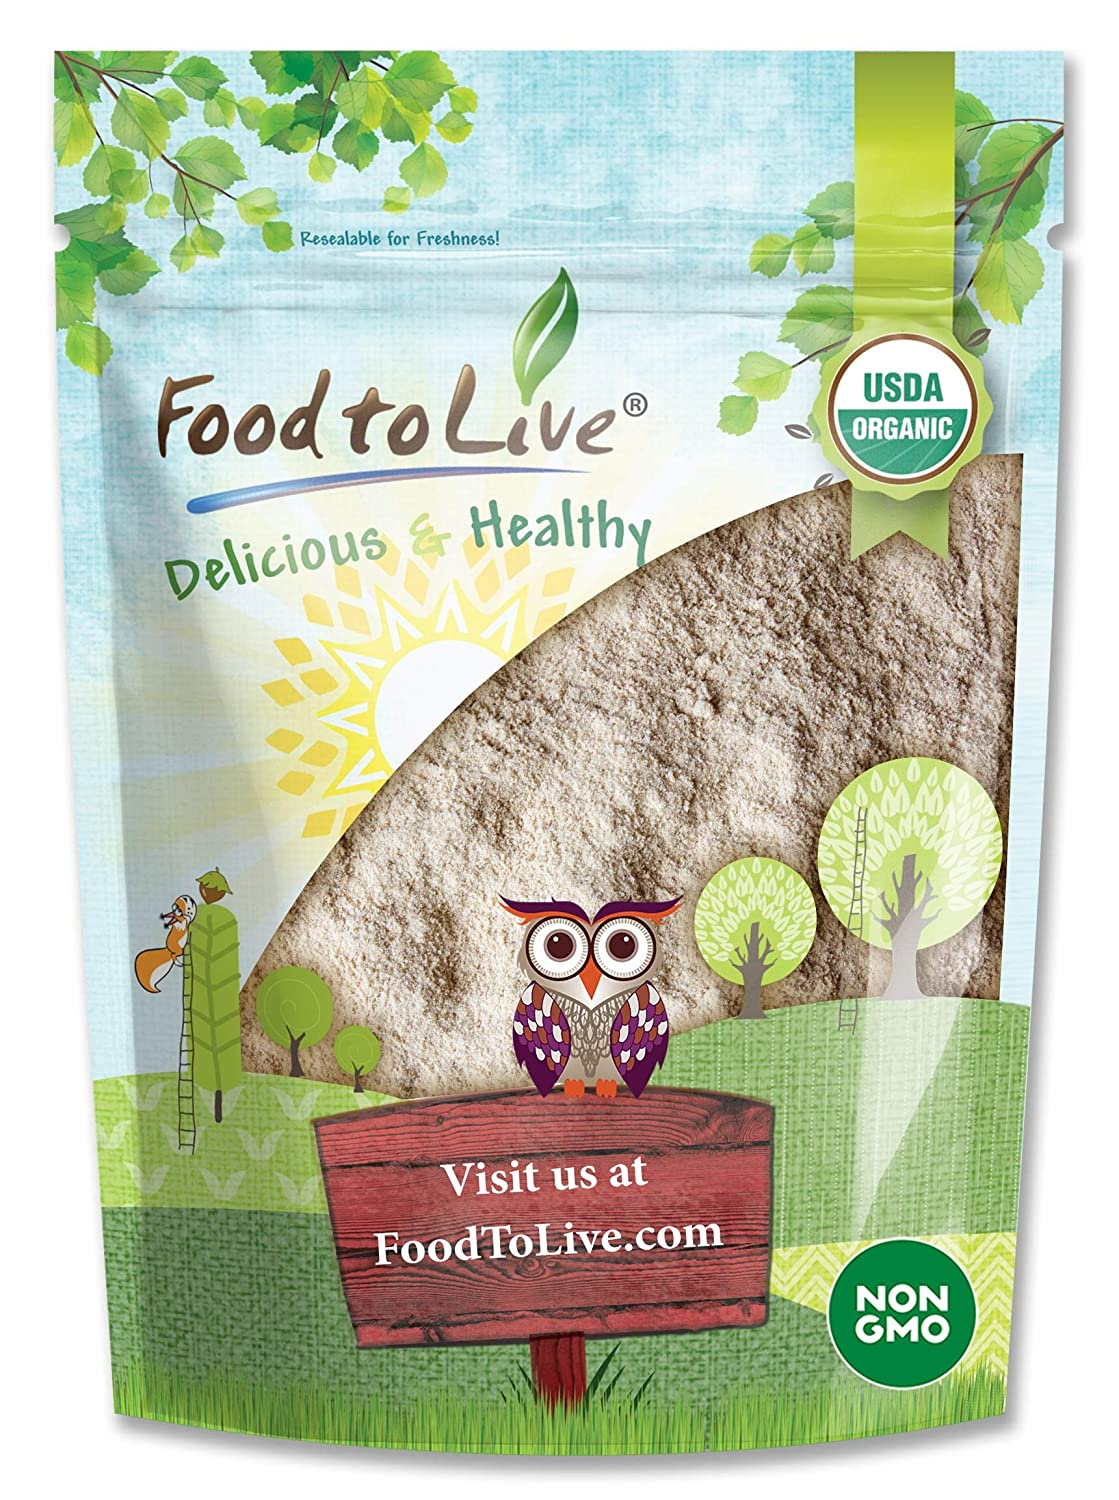 Organic Barley Flour, 1 Pound - Stone Ground from Whole Hulled Barley, Non-GMO, Raw, Vegan, Bulk, Great for Baking, Product of the USA